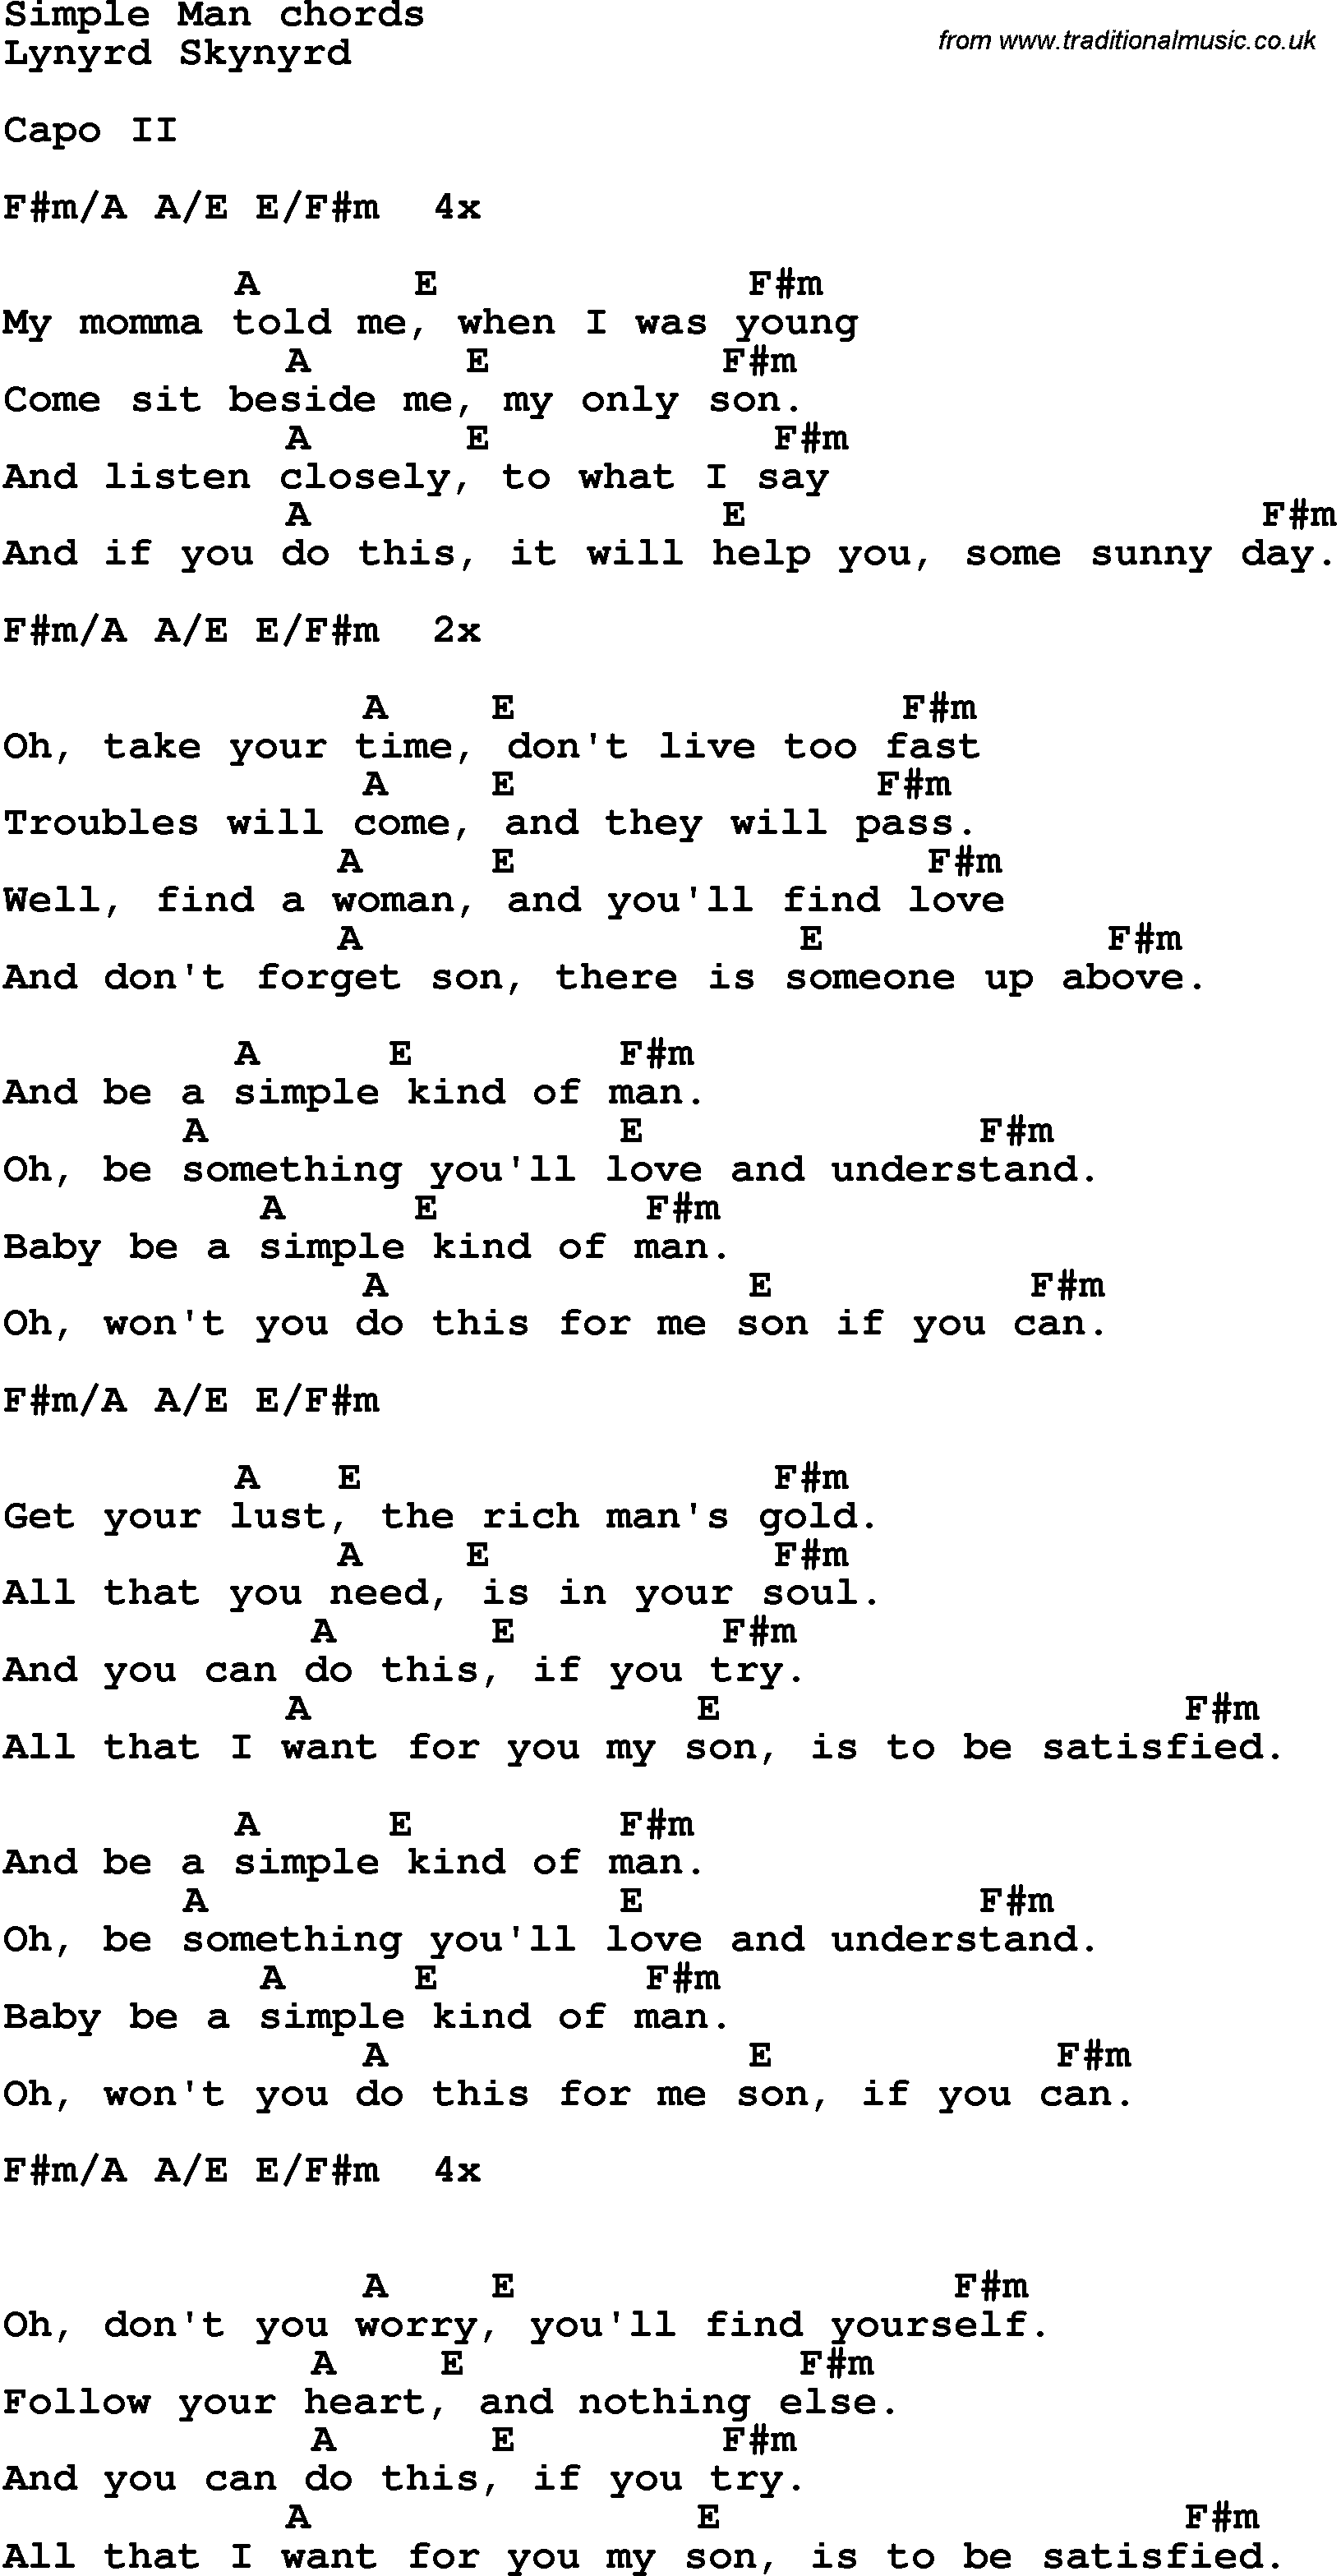 Song Lyrics With Guitar Chords For Simple Man